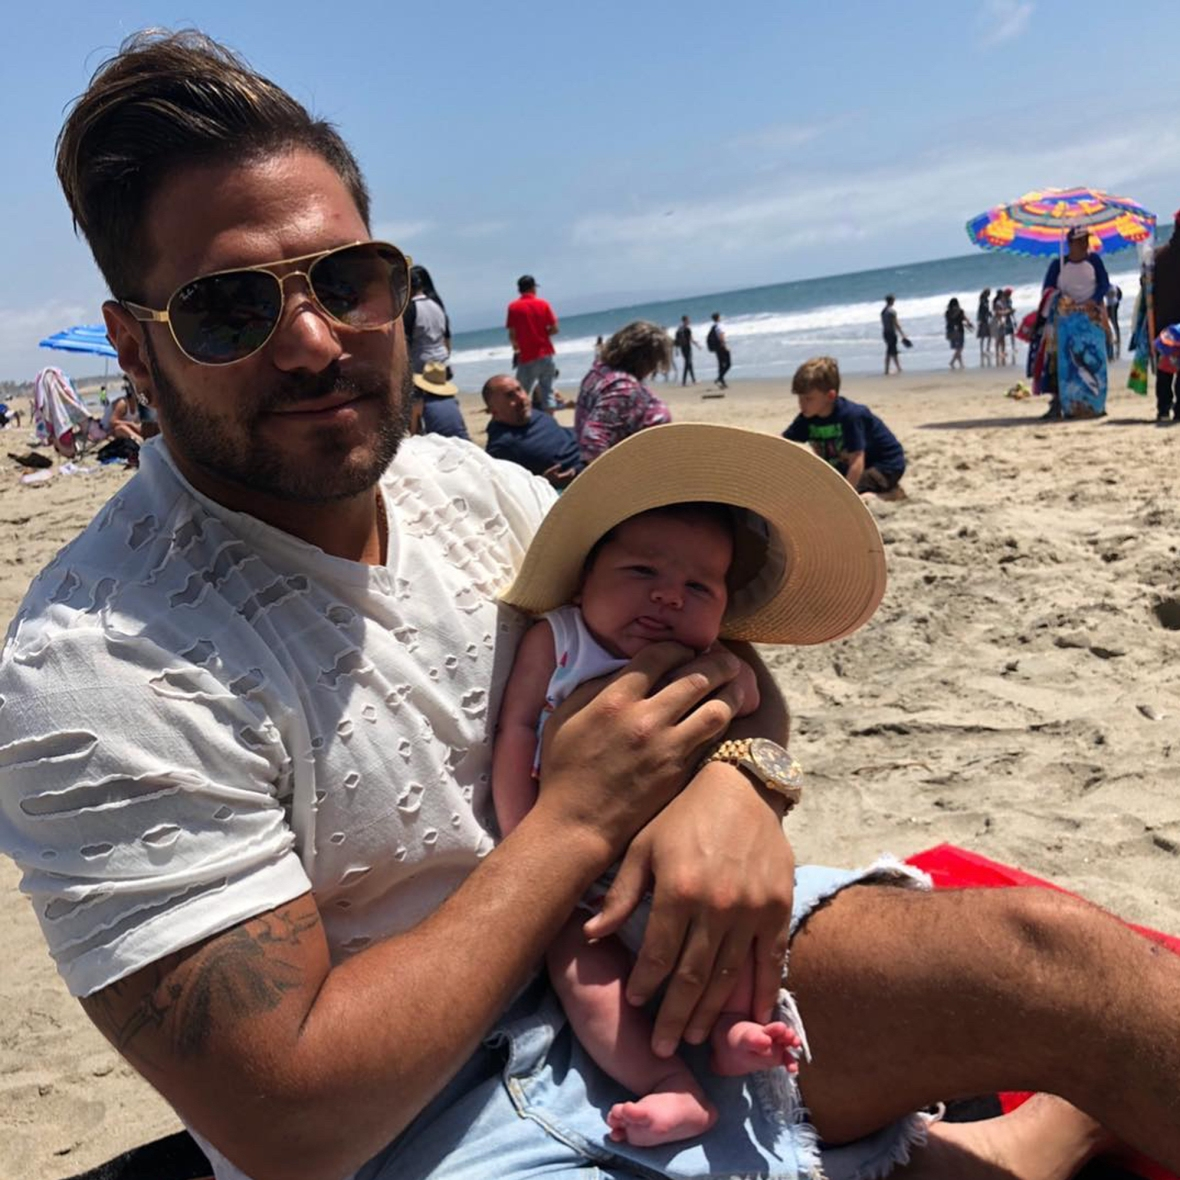 Ronnie Ortiz-Magro 'Anxious' to See Daughter Amid Restraining Order Drama